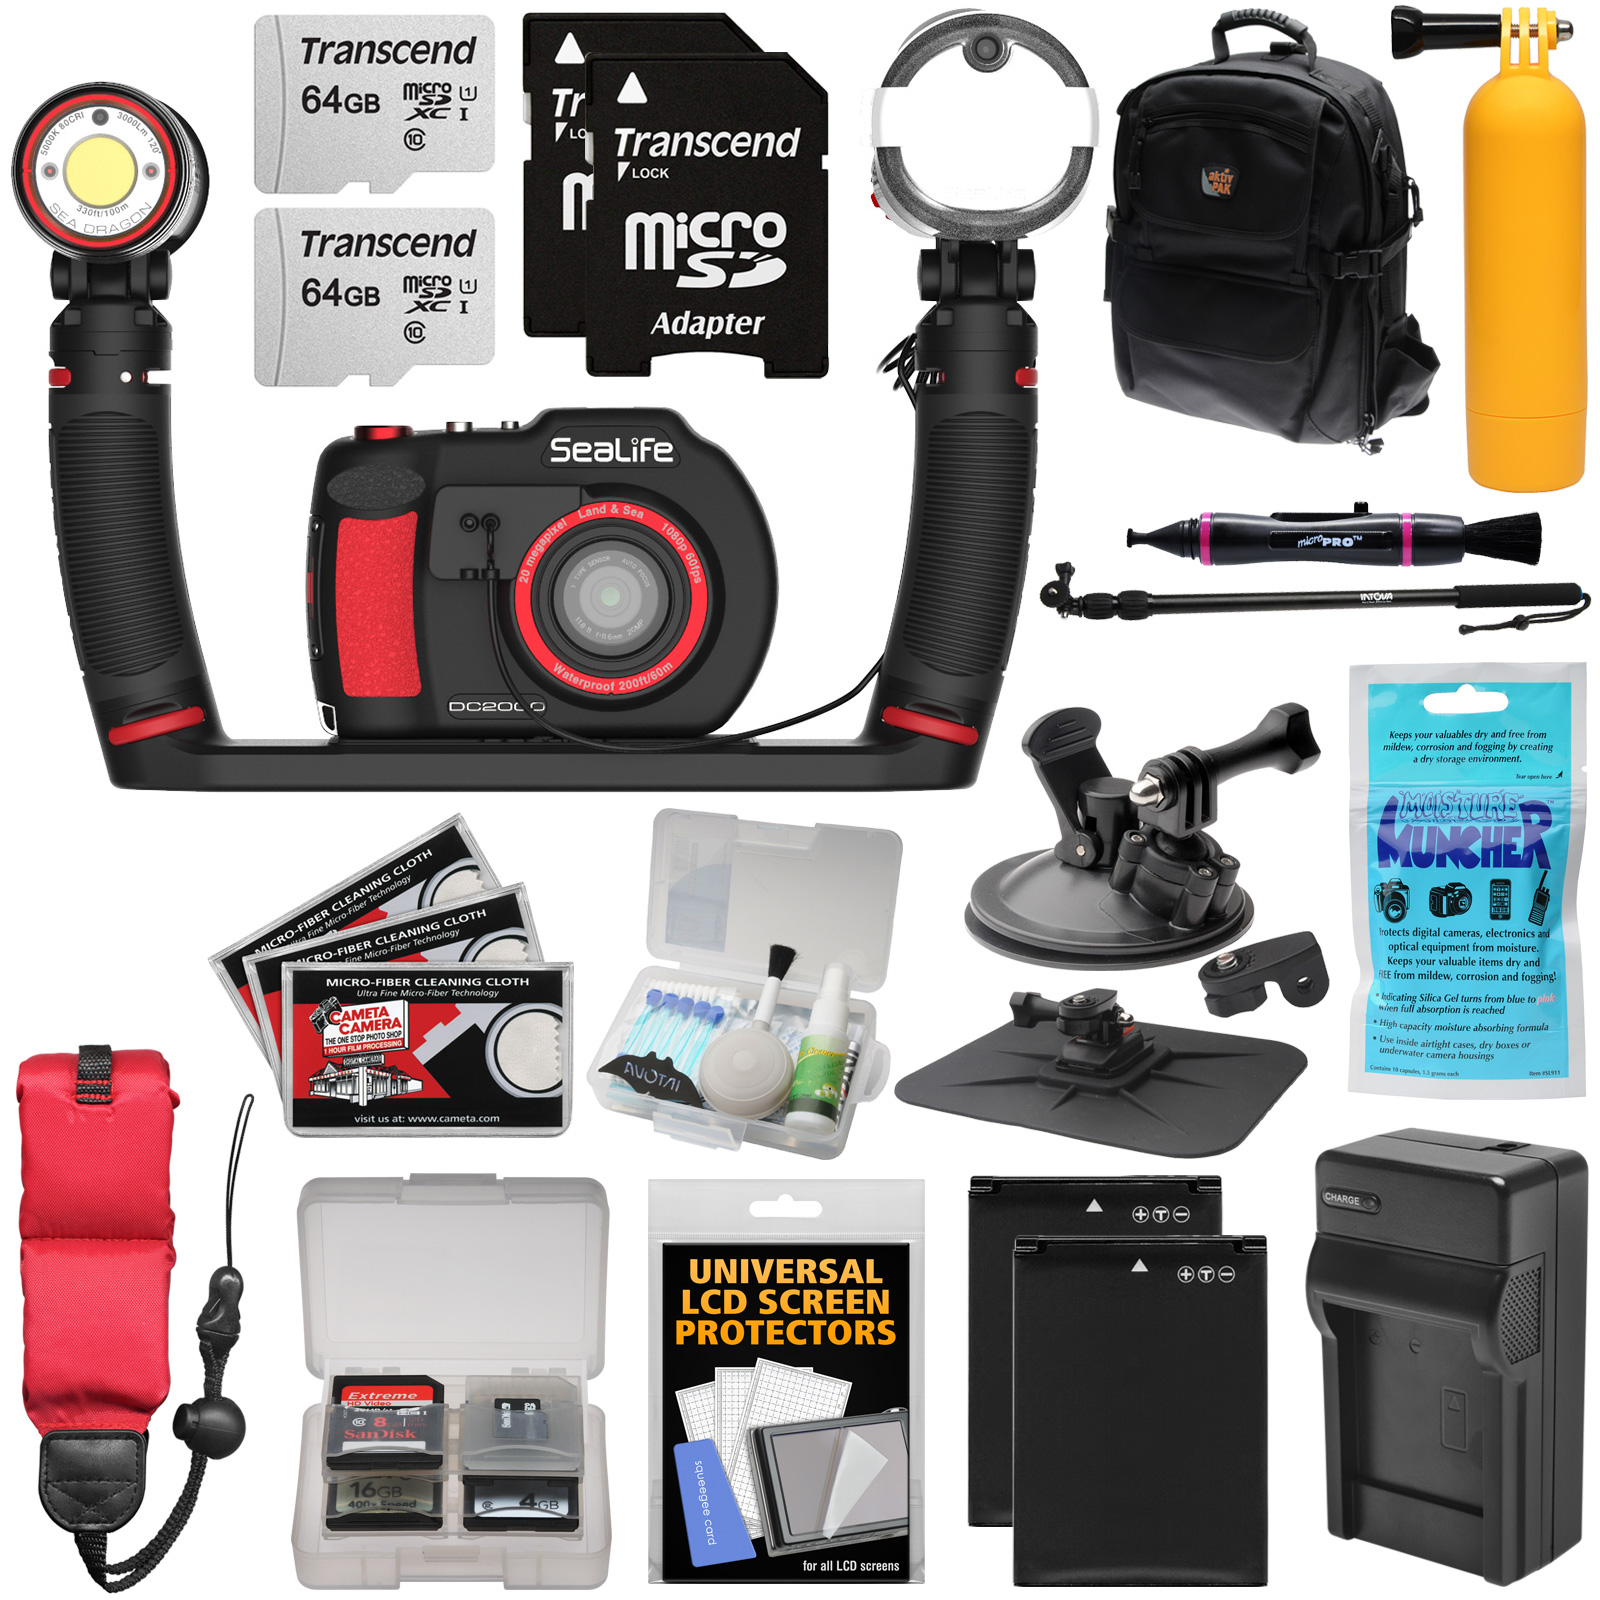 SeaLife DC2000 Pro Duo HD Underwater Digital Camera with Sea Dragon 3000 Light / Flash Set + (2) 64GB Cards + Batteries + Charger + Ext Pole + Mounts + Backpack Kit